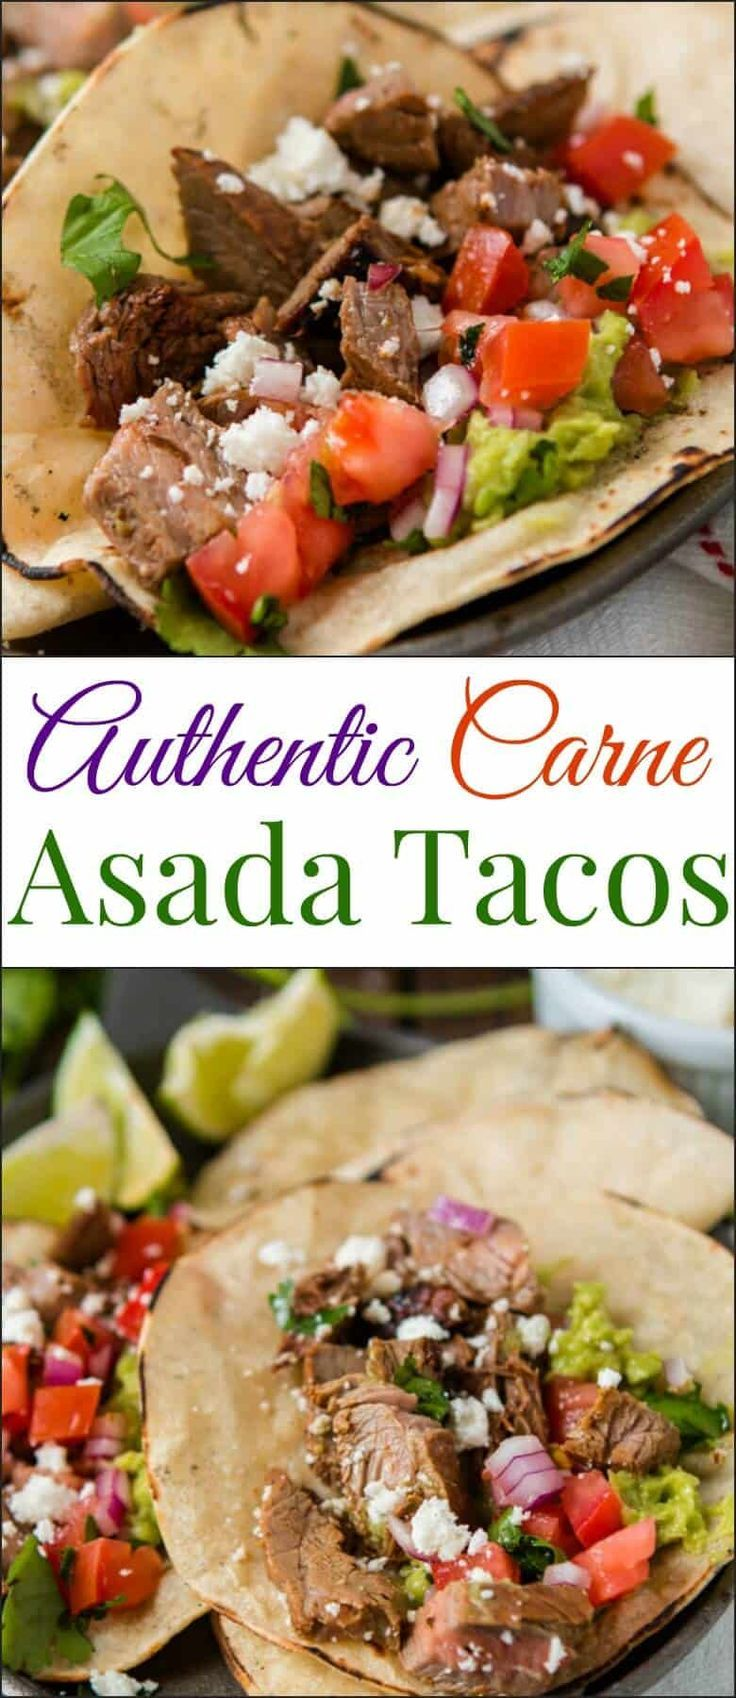 Marinated flank steak makes these authentic carne asada tacos the best we've ever had. Who needs a restaurant or vacation now?! via @ohsweetbasil